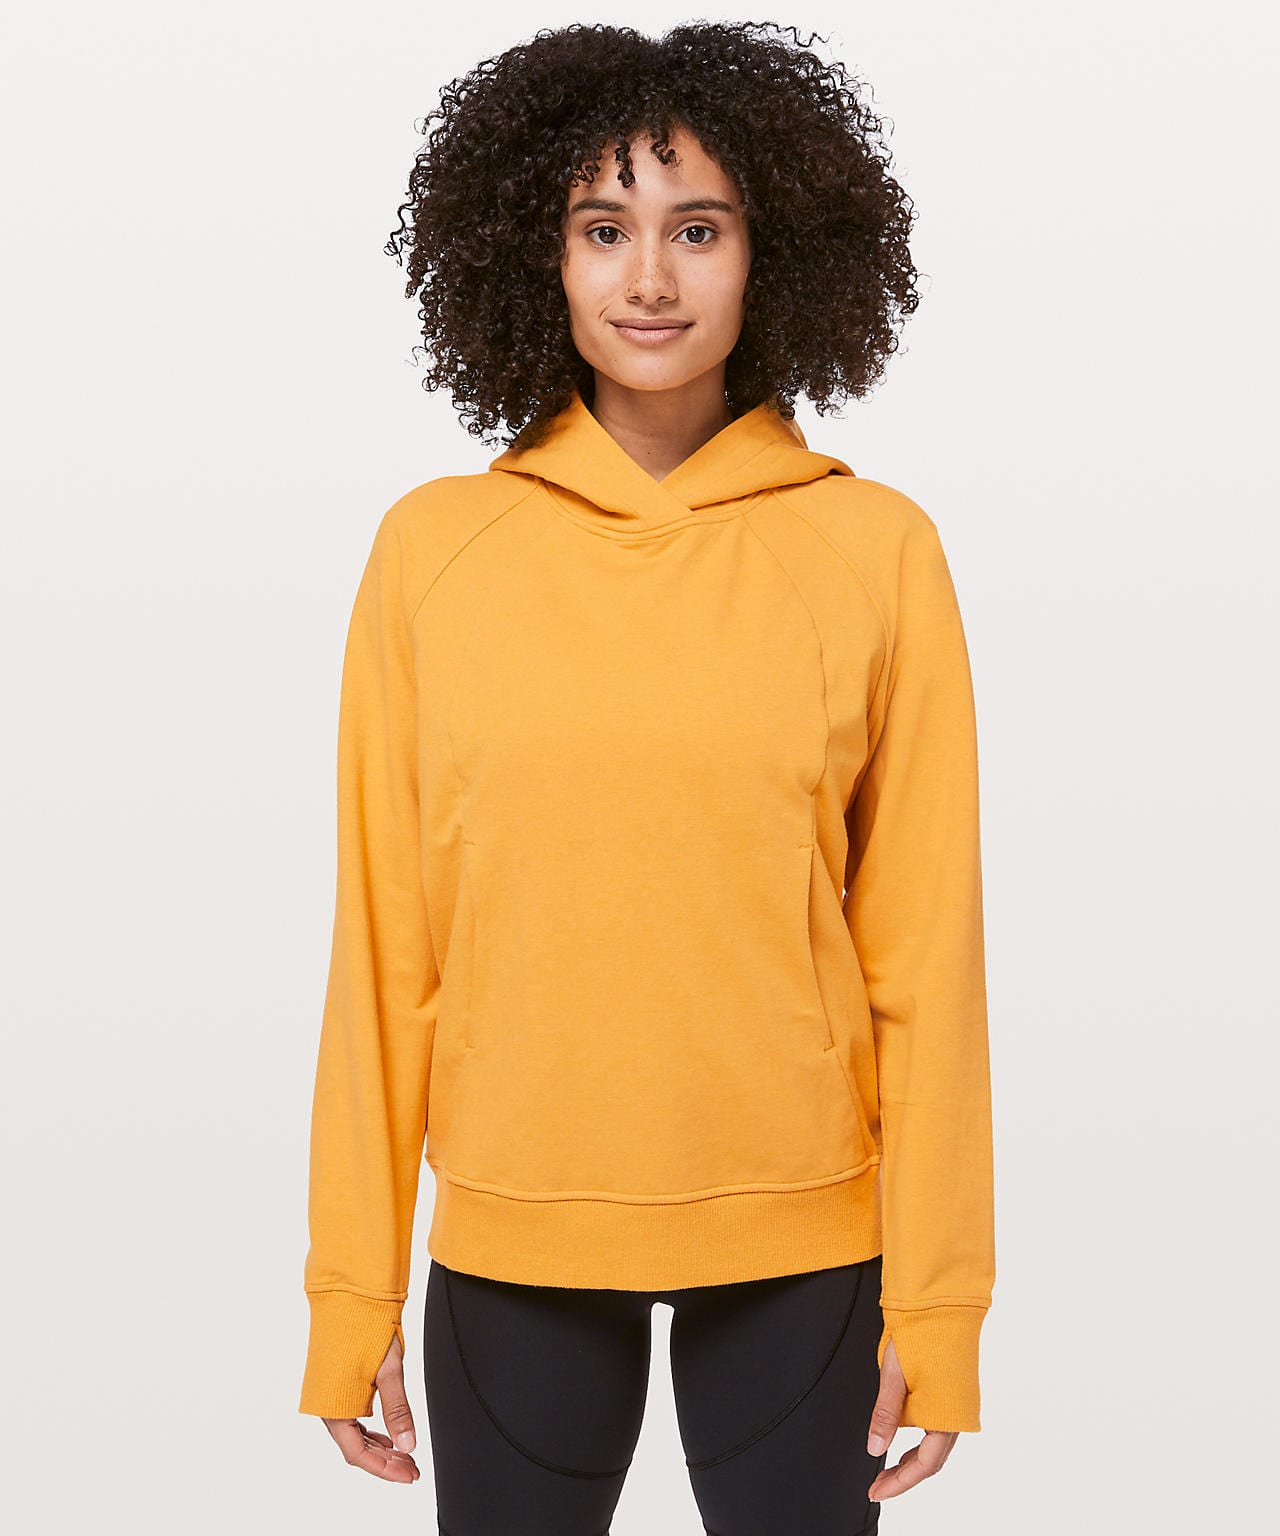 Scuba Pullover, heathered honey lemon, Lululemon Upload